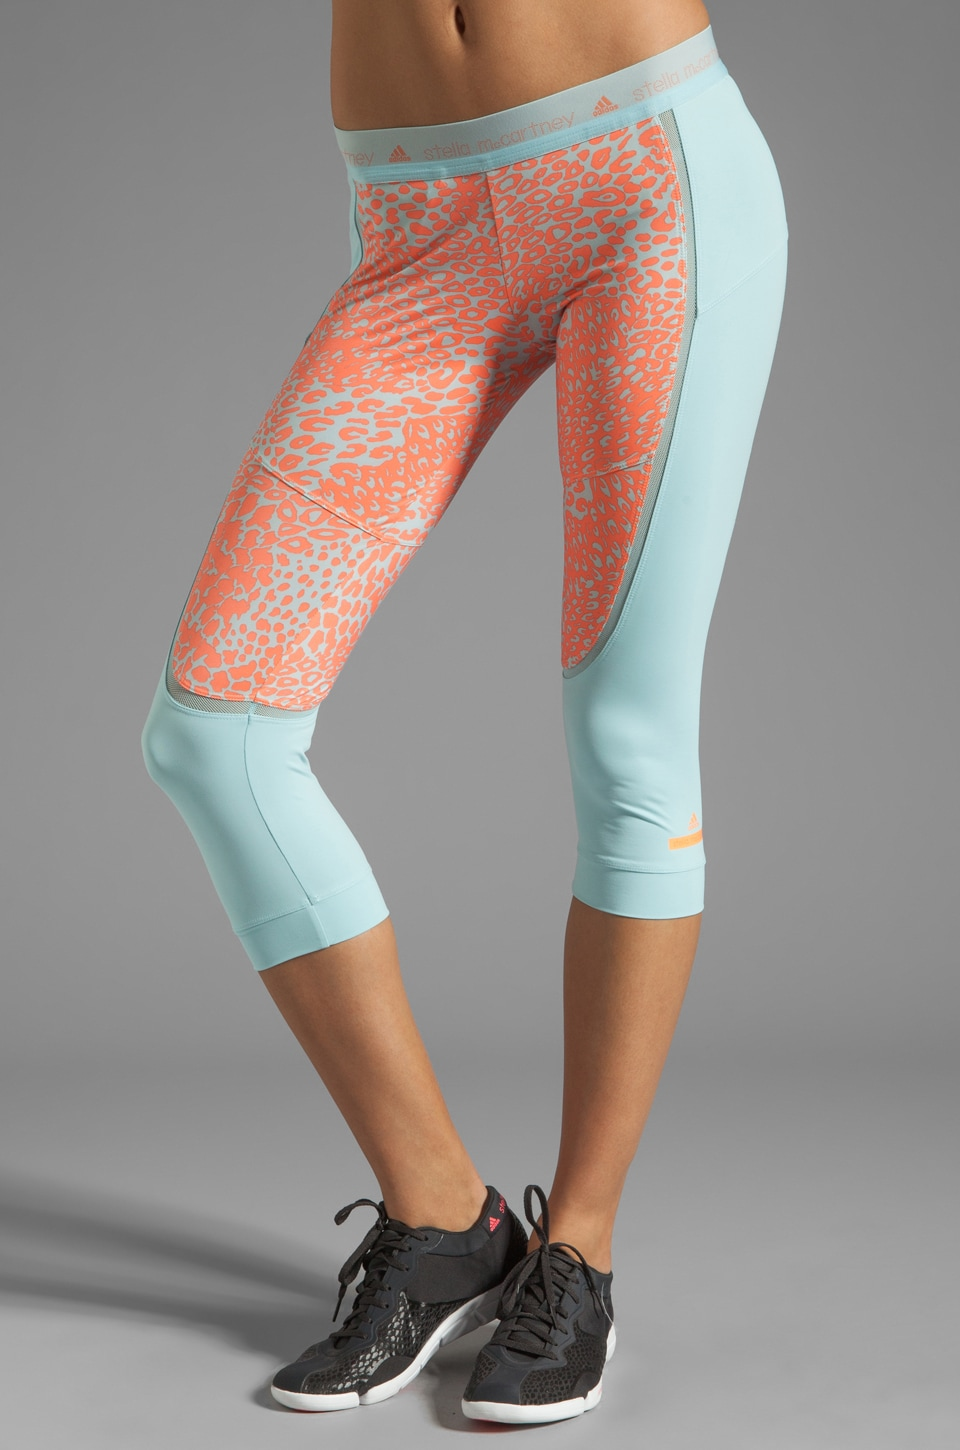 adidas by Stella McCartney Athletic Pant in Vapour Blue/Ultra Bright